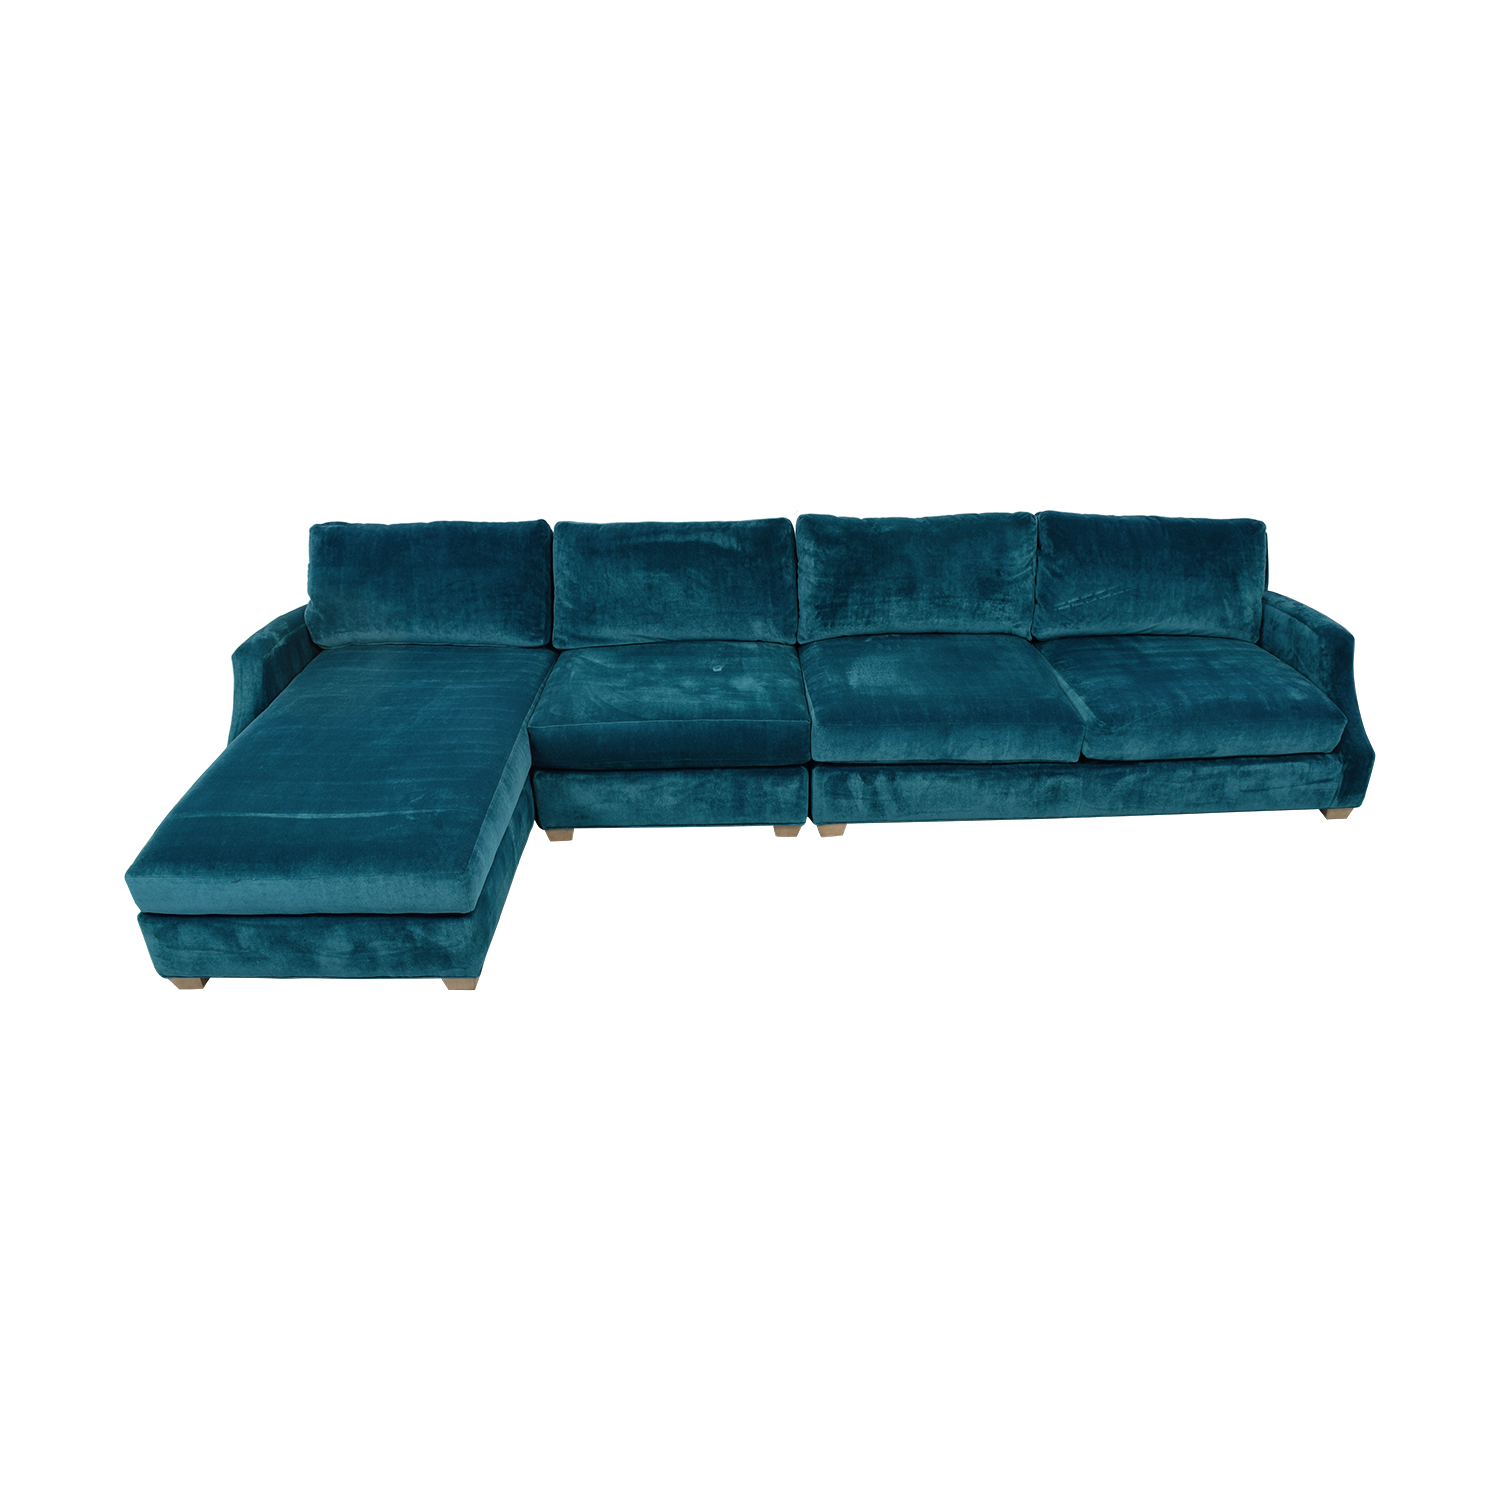 Ethan Allen Ethan Allen Emerald Right Chaise Sectional dimensions